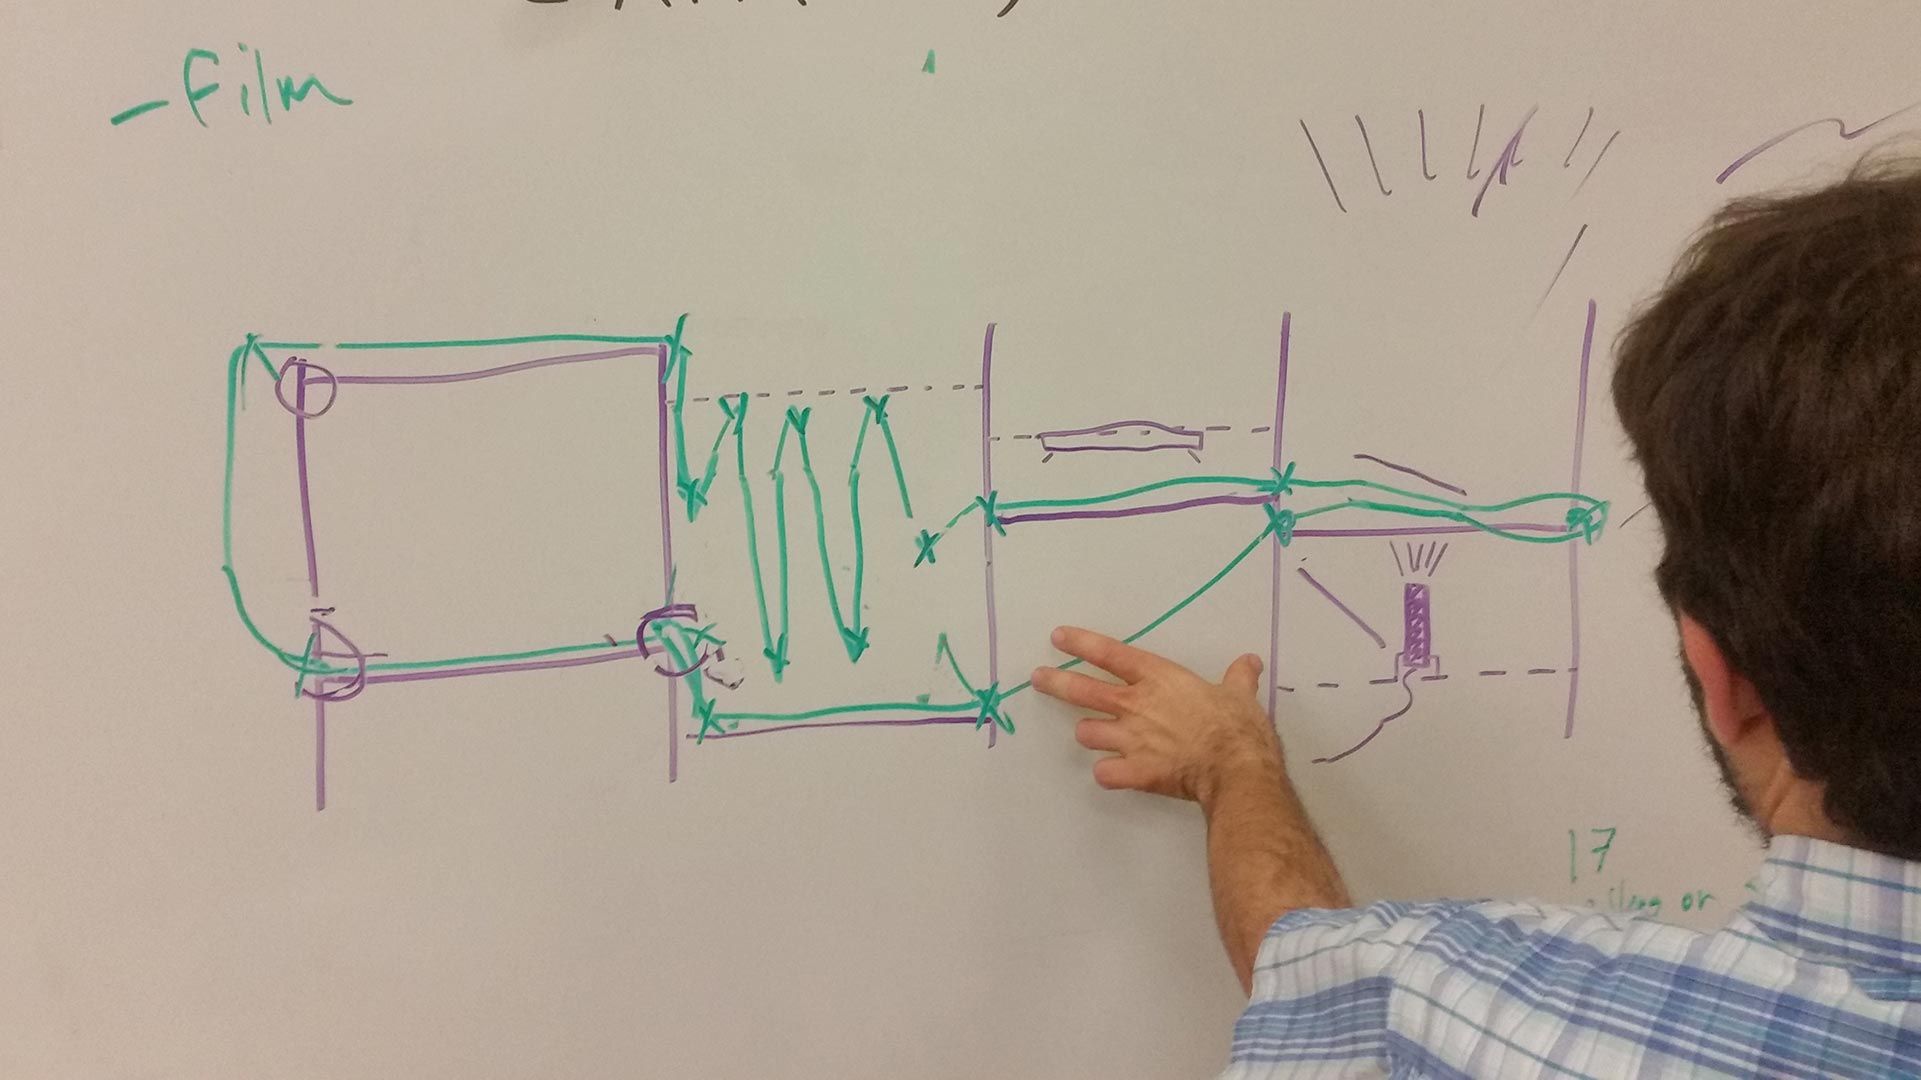 The green line is what ultimately became the path that the film took over the conveyor, featuring artist Jake Kassen.